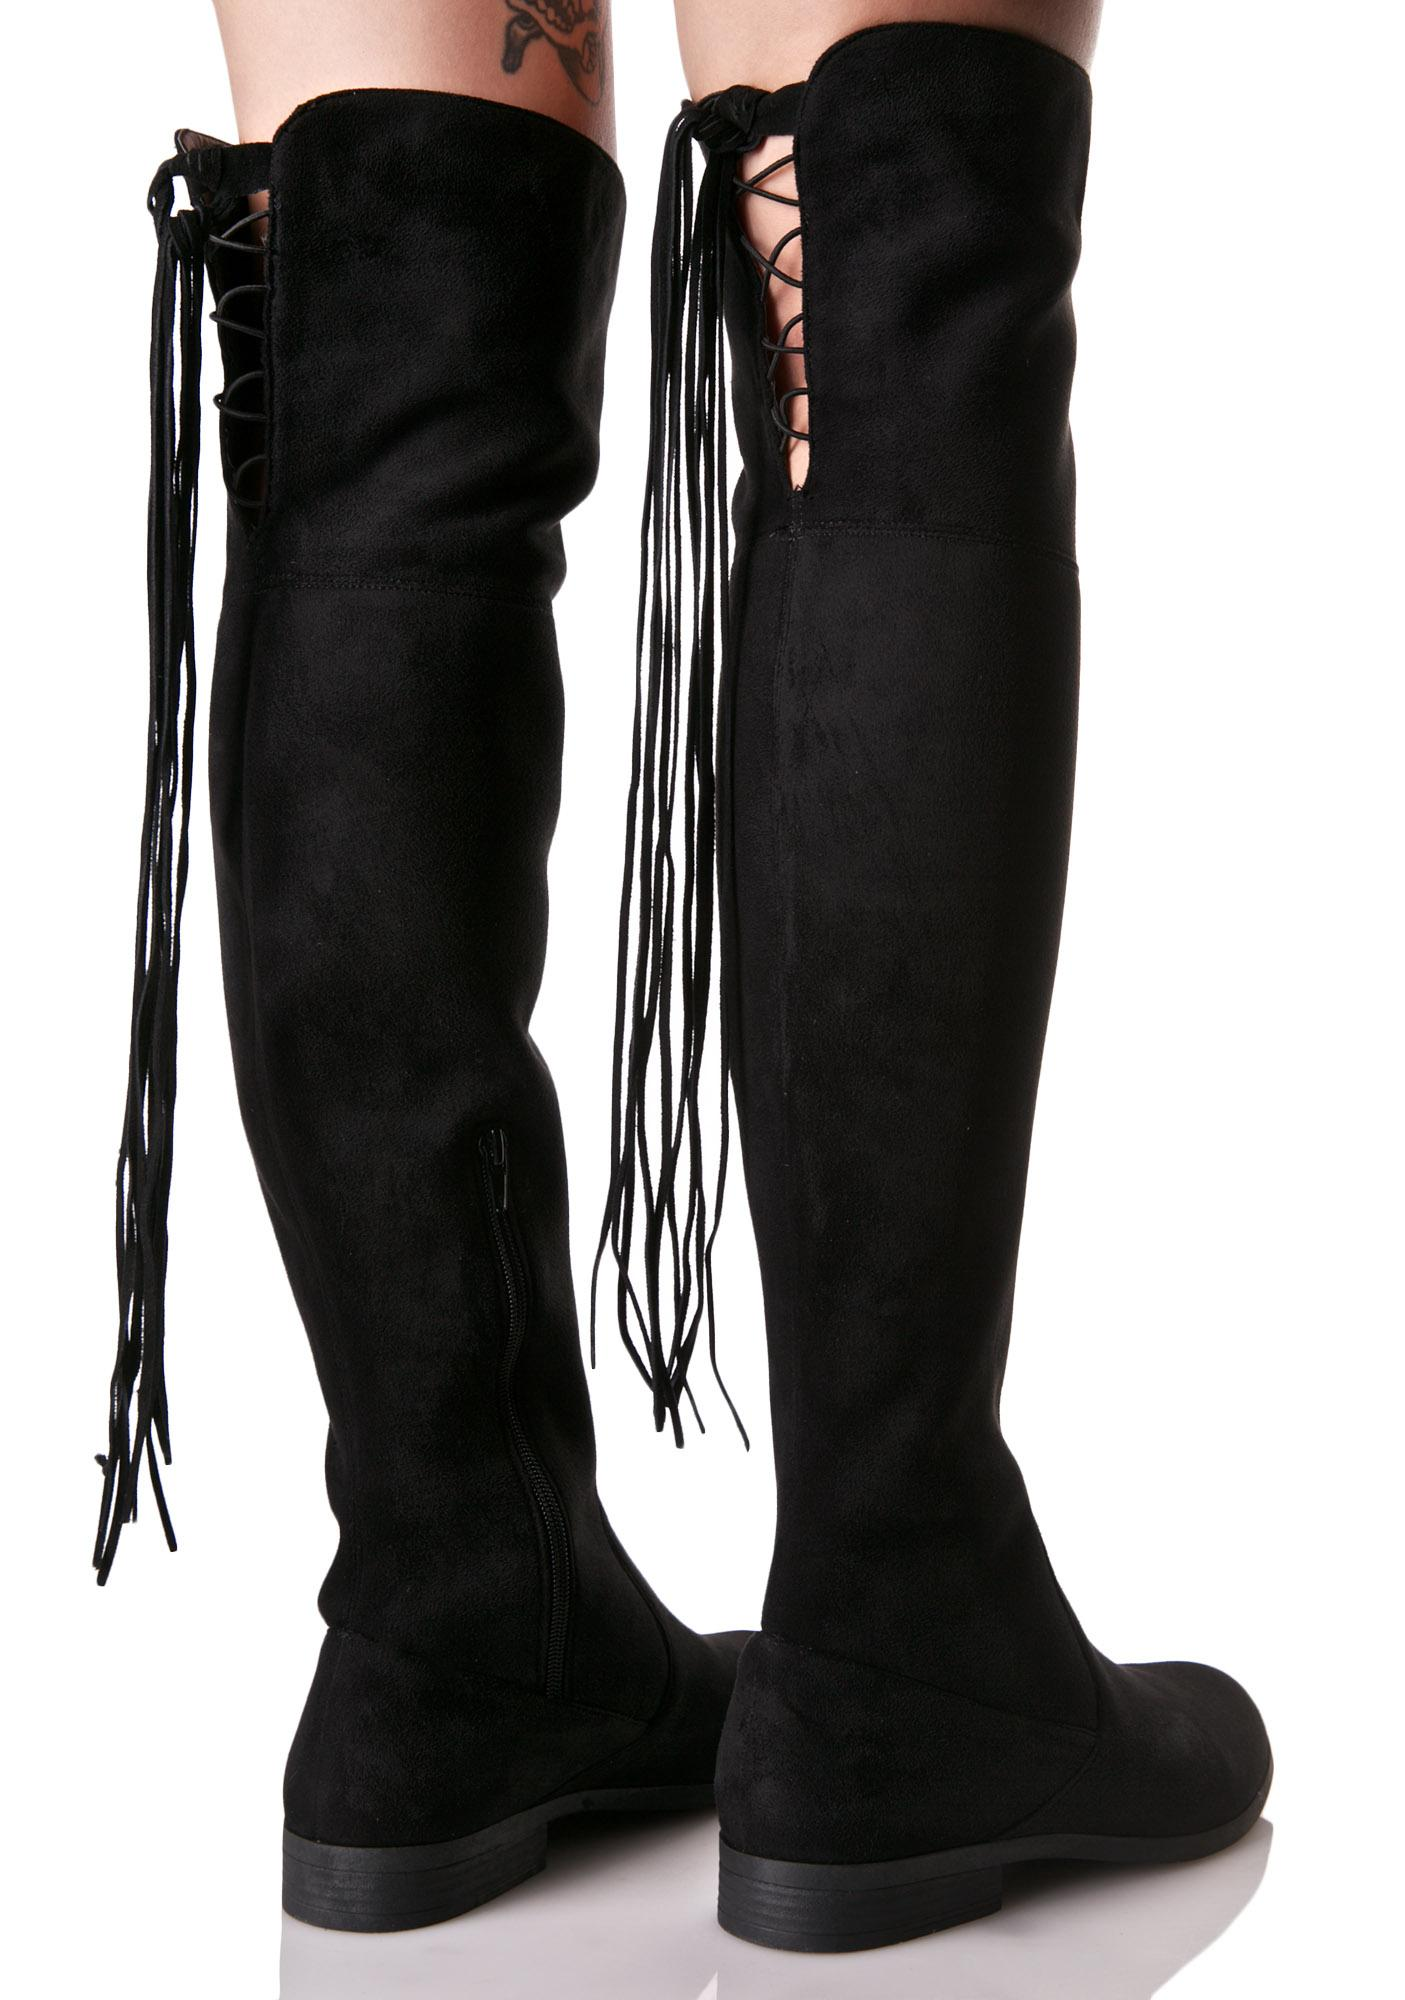 Lust For Life Rascal Knee-High Boots